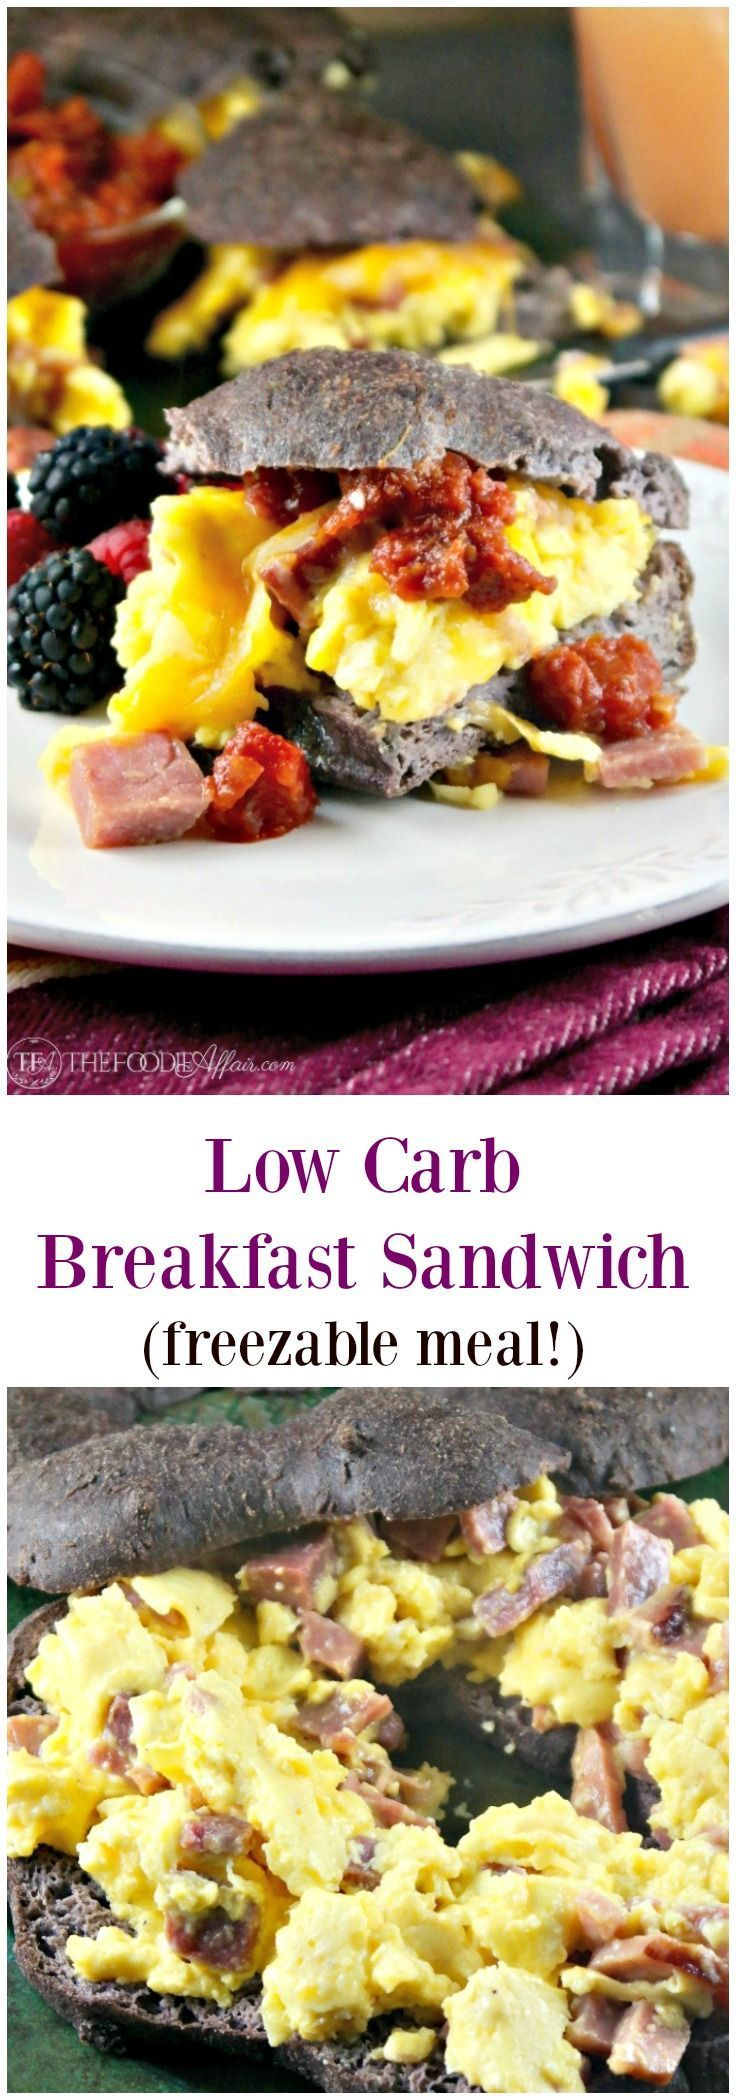 Low Carb Breakfast Sandwich filled with fluffy eggs folded with ham and melted cheese! Serve a crowd or wrap up for a grab and go meal!